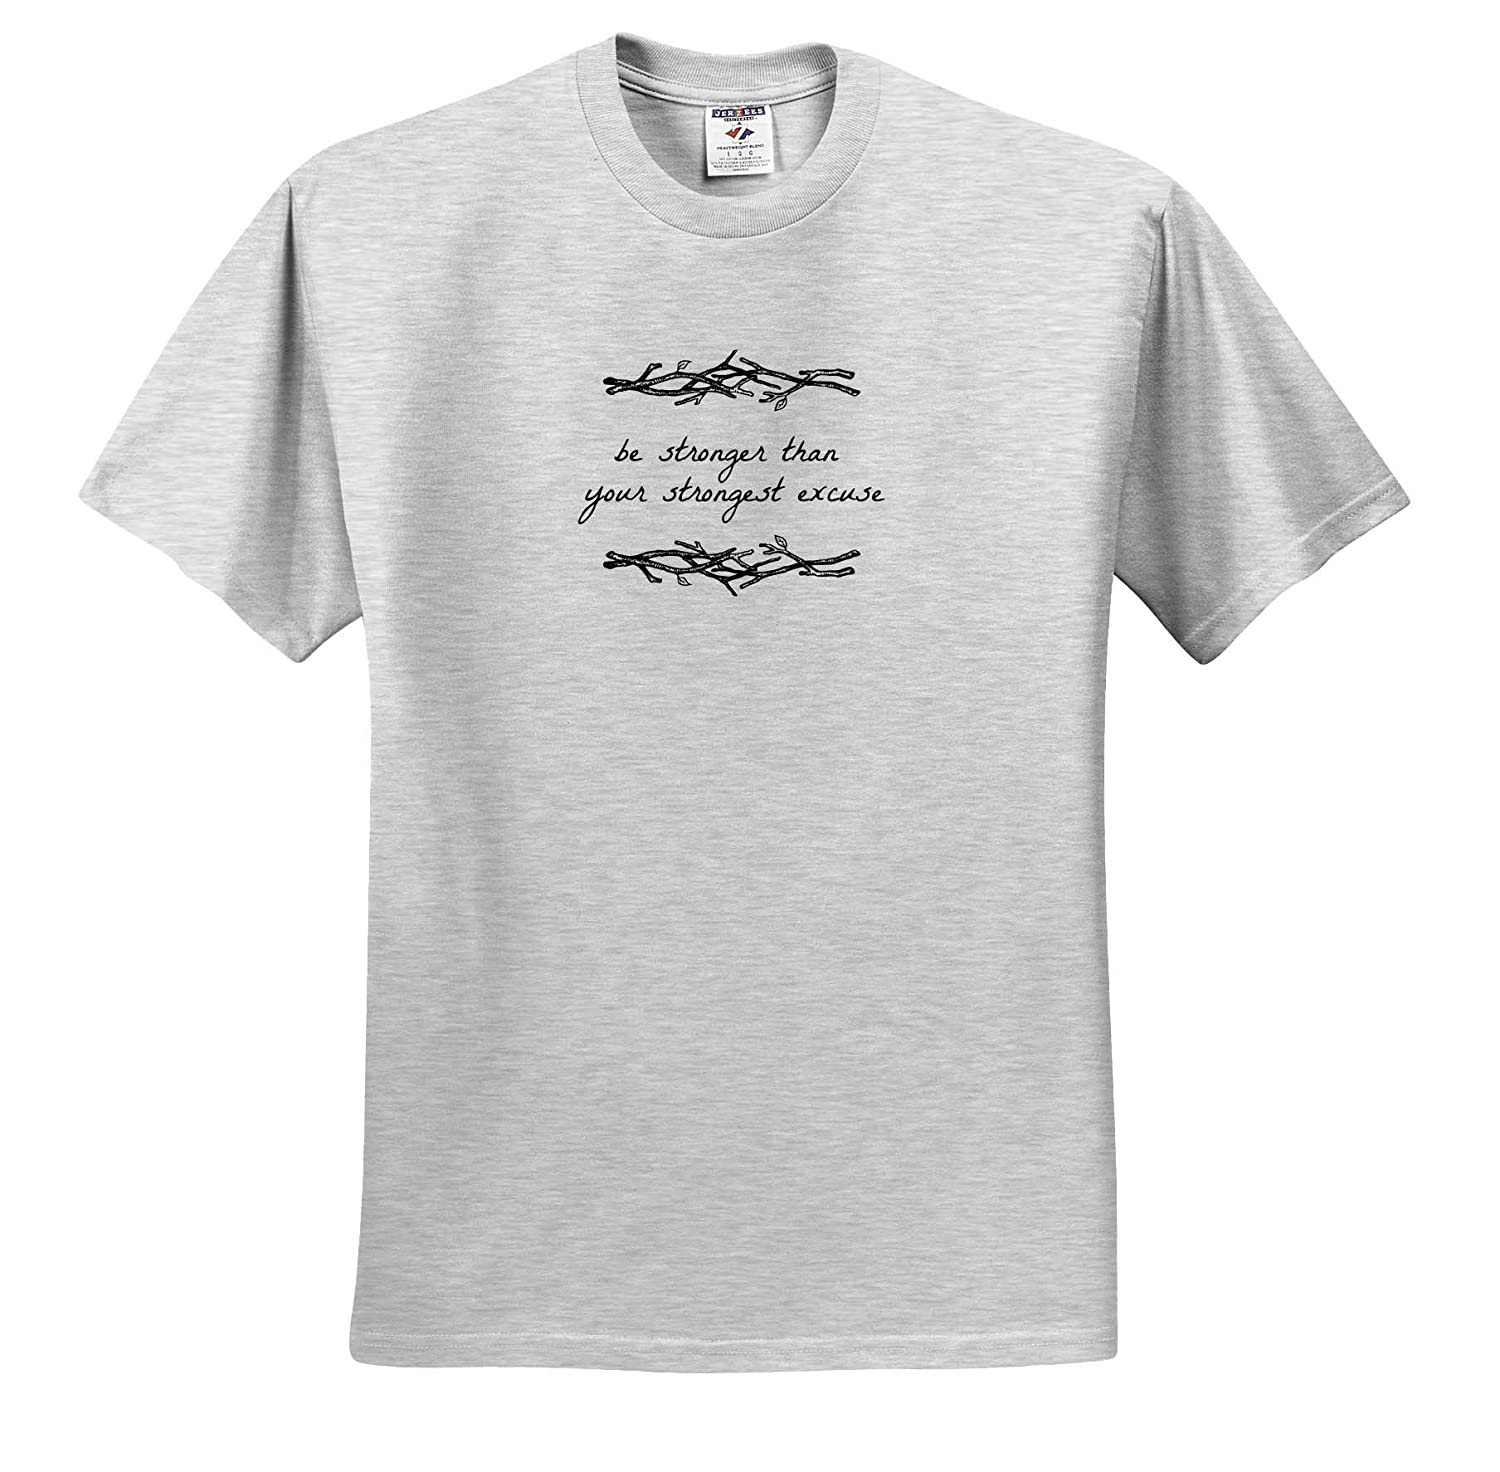 3dRose Nicole R Image of Be Stronger Than Your Strongest Excuse - Quote ts/_310897 Adult T-Shirt XL